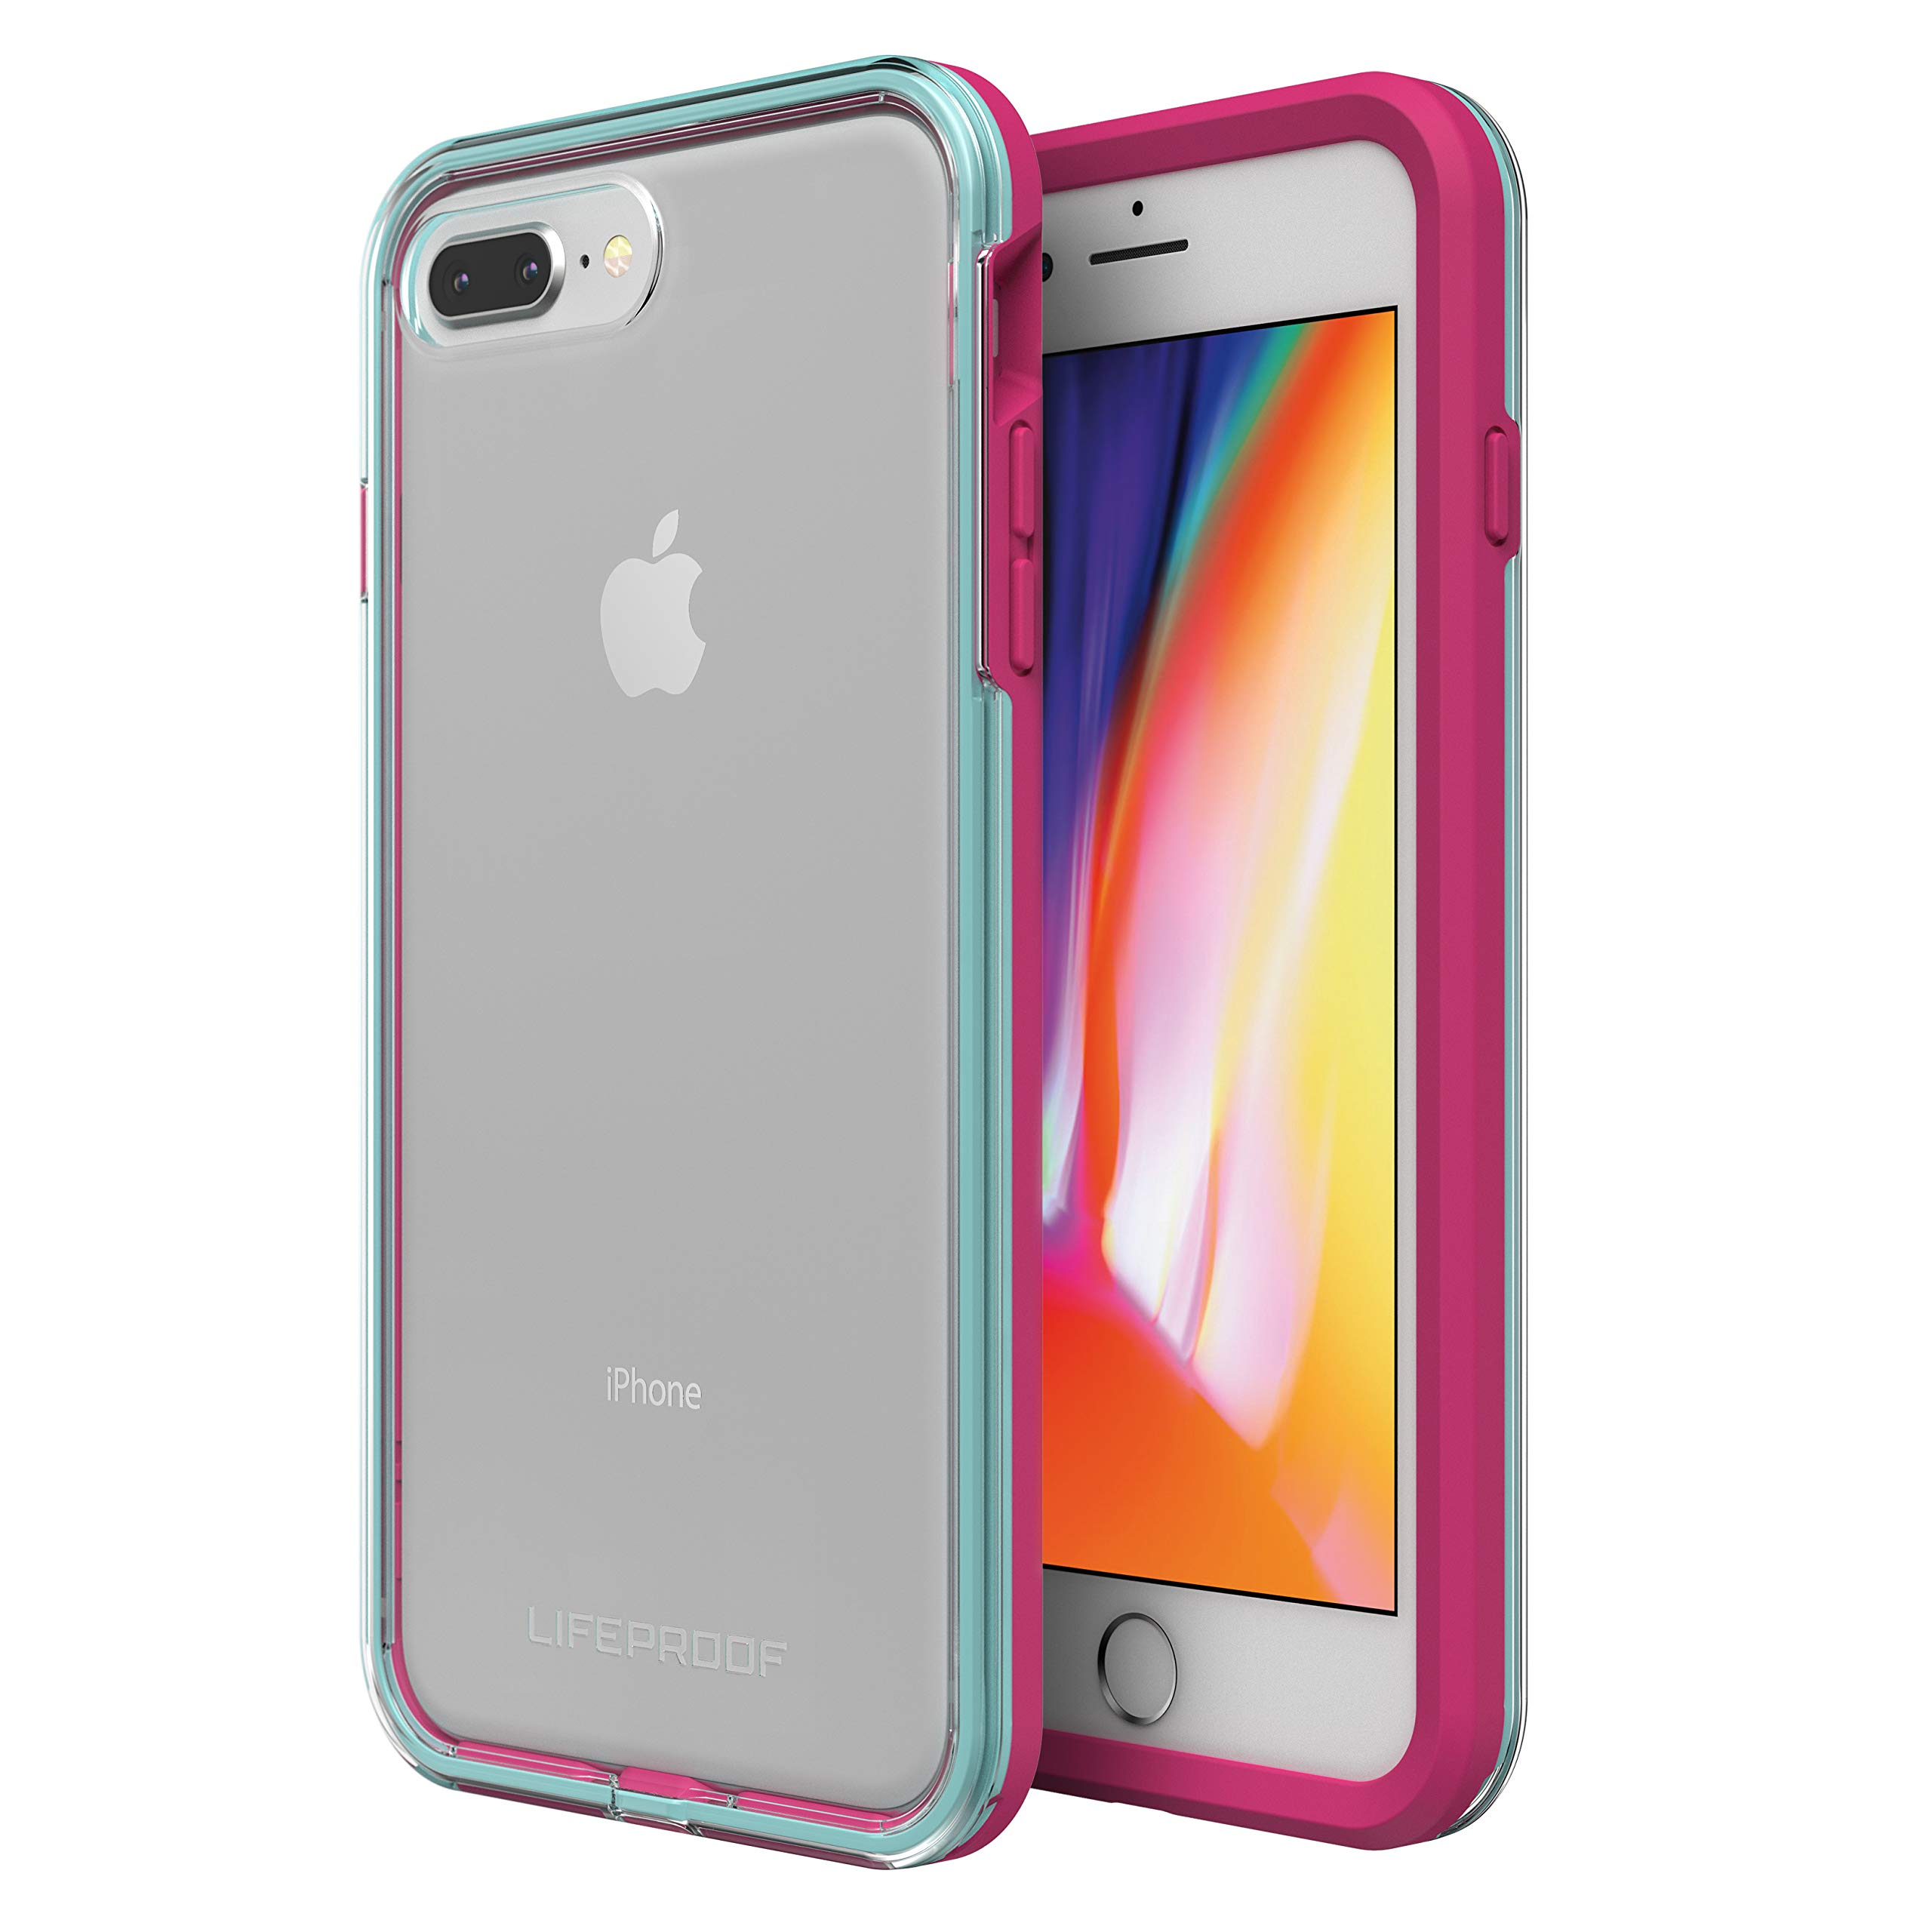 Lifeproof SLAM Series Case for iPhone 8 Plus & 7 Plus (ONLY) - Retail Packaging - Aloha Sunset (Clear/Blue Tint/Process Magenta) by LifeProof (Image #1)